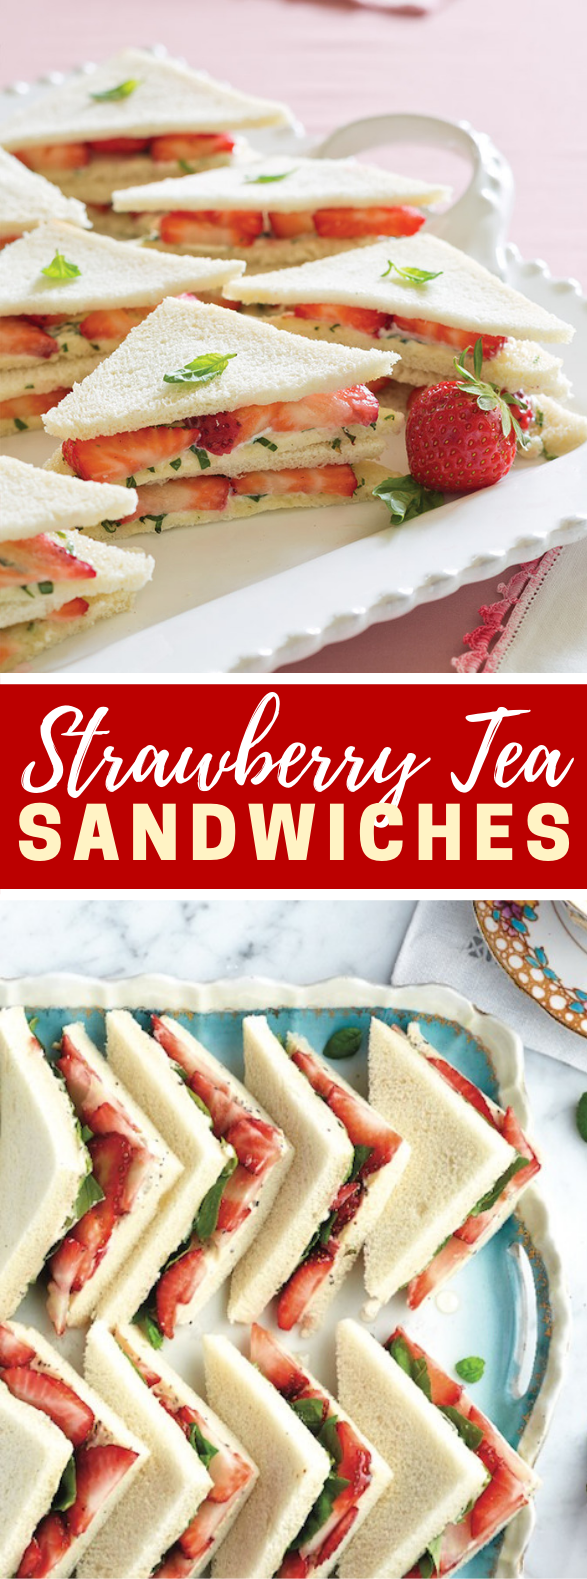 Strawberry Tea Sandwiches #appetizers #lunch